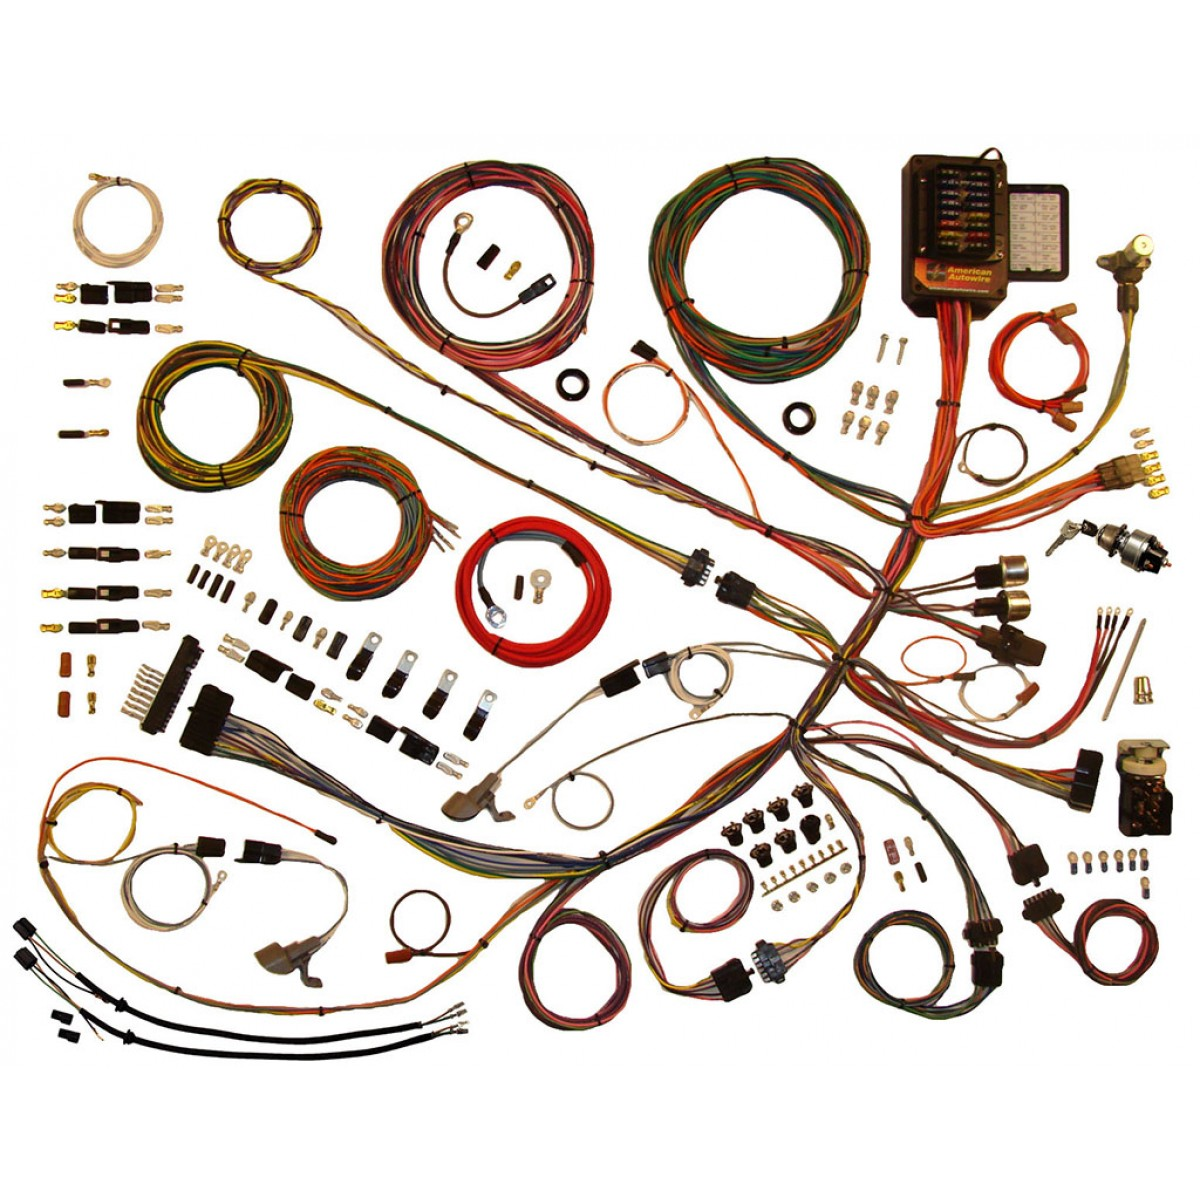 complete wiring harness kit 1953 1956 ford f100 part 510303 ford truck wiring harness f100 1953 1956 ford f100 wiring harness complete wiring harness kit ford truck wiring harness at soozxer.org